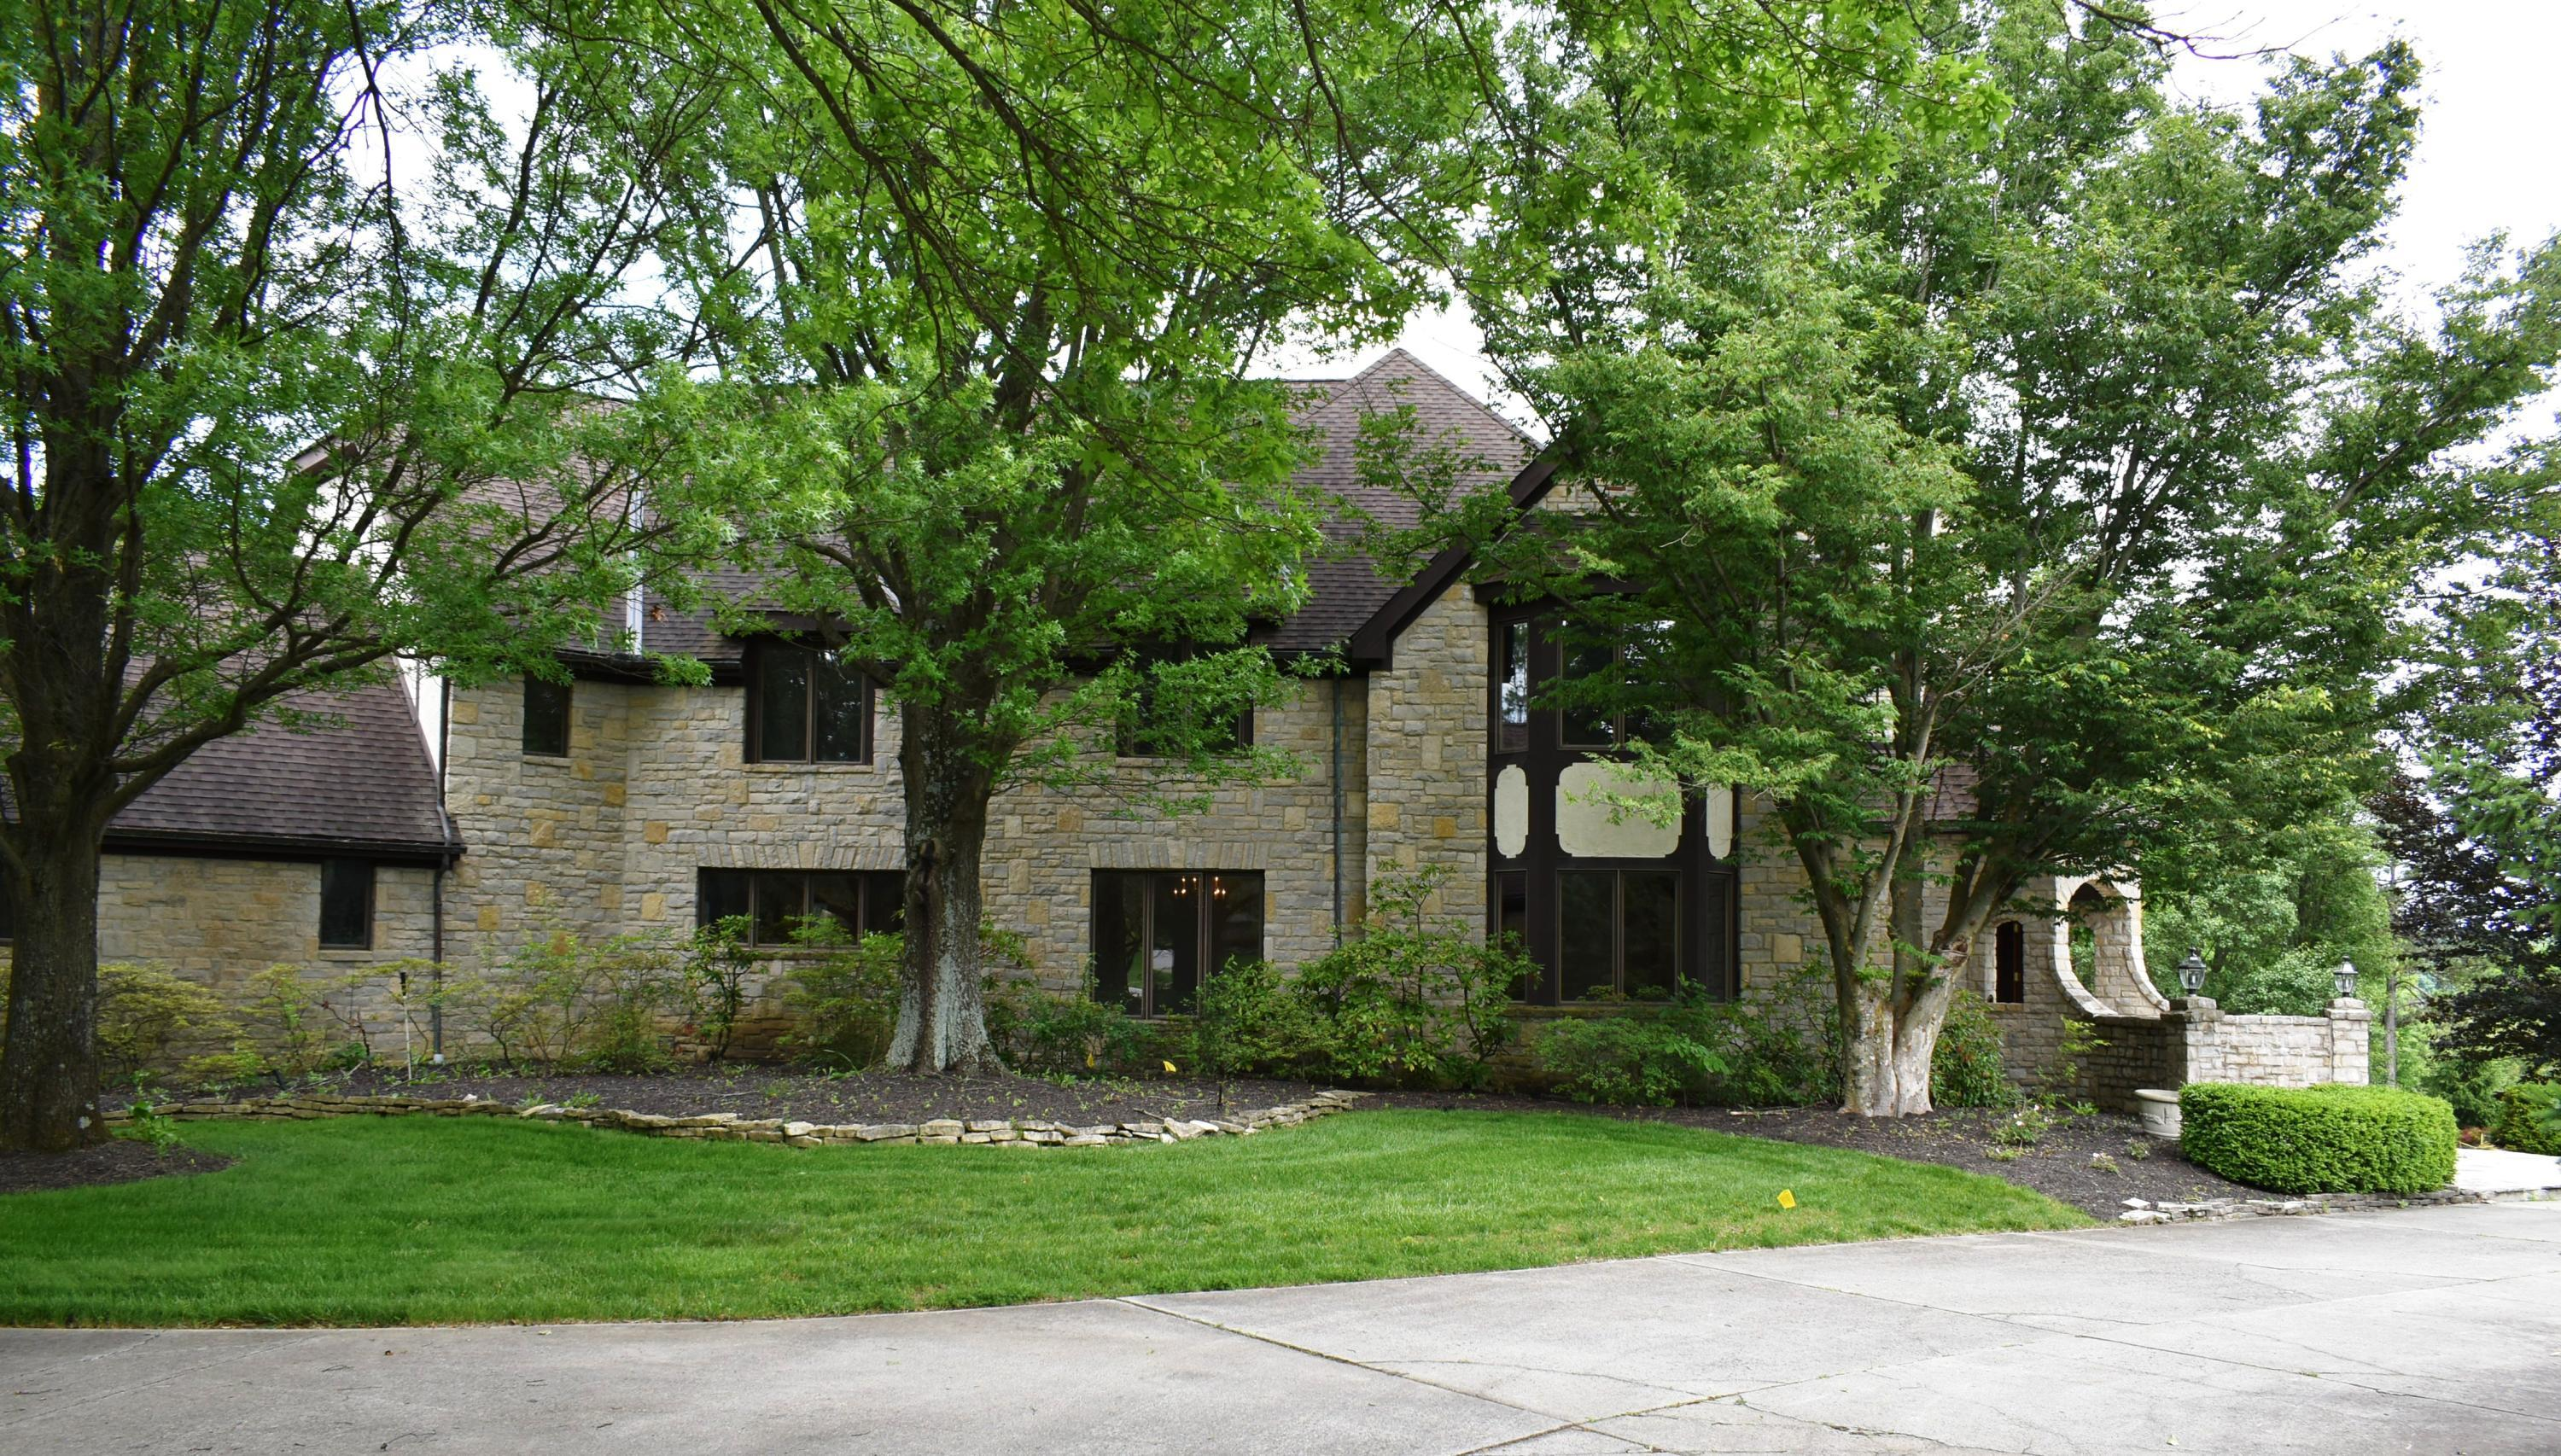 1650 Abbotsford Green Drive, Powell, Ohio 43065, 5 Bedrooms Bedrooms, ,6 BathroomsBathrooms,Residential,For Sale,Abbotsford Green,219044740